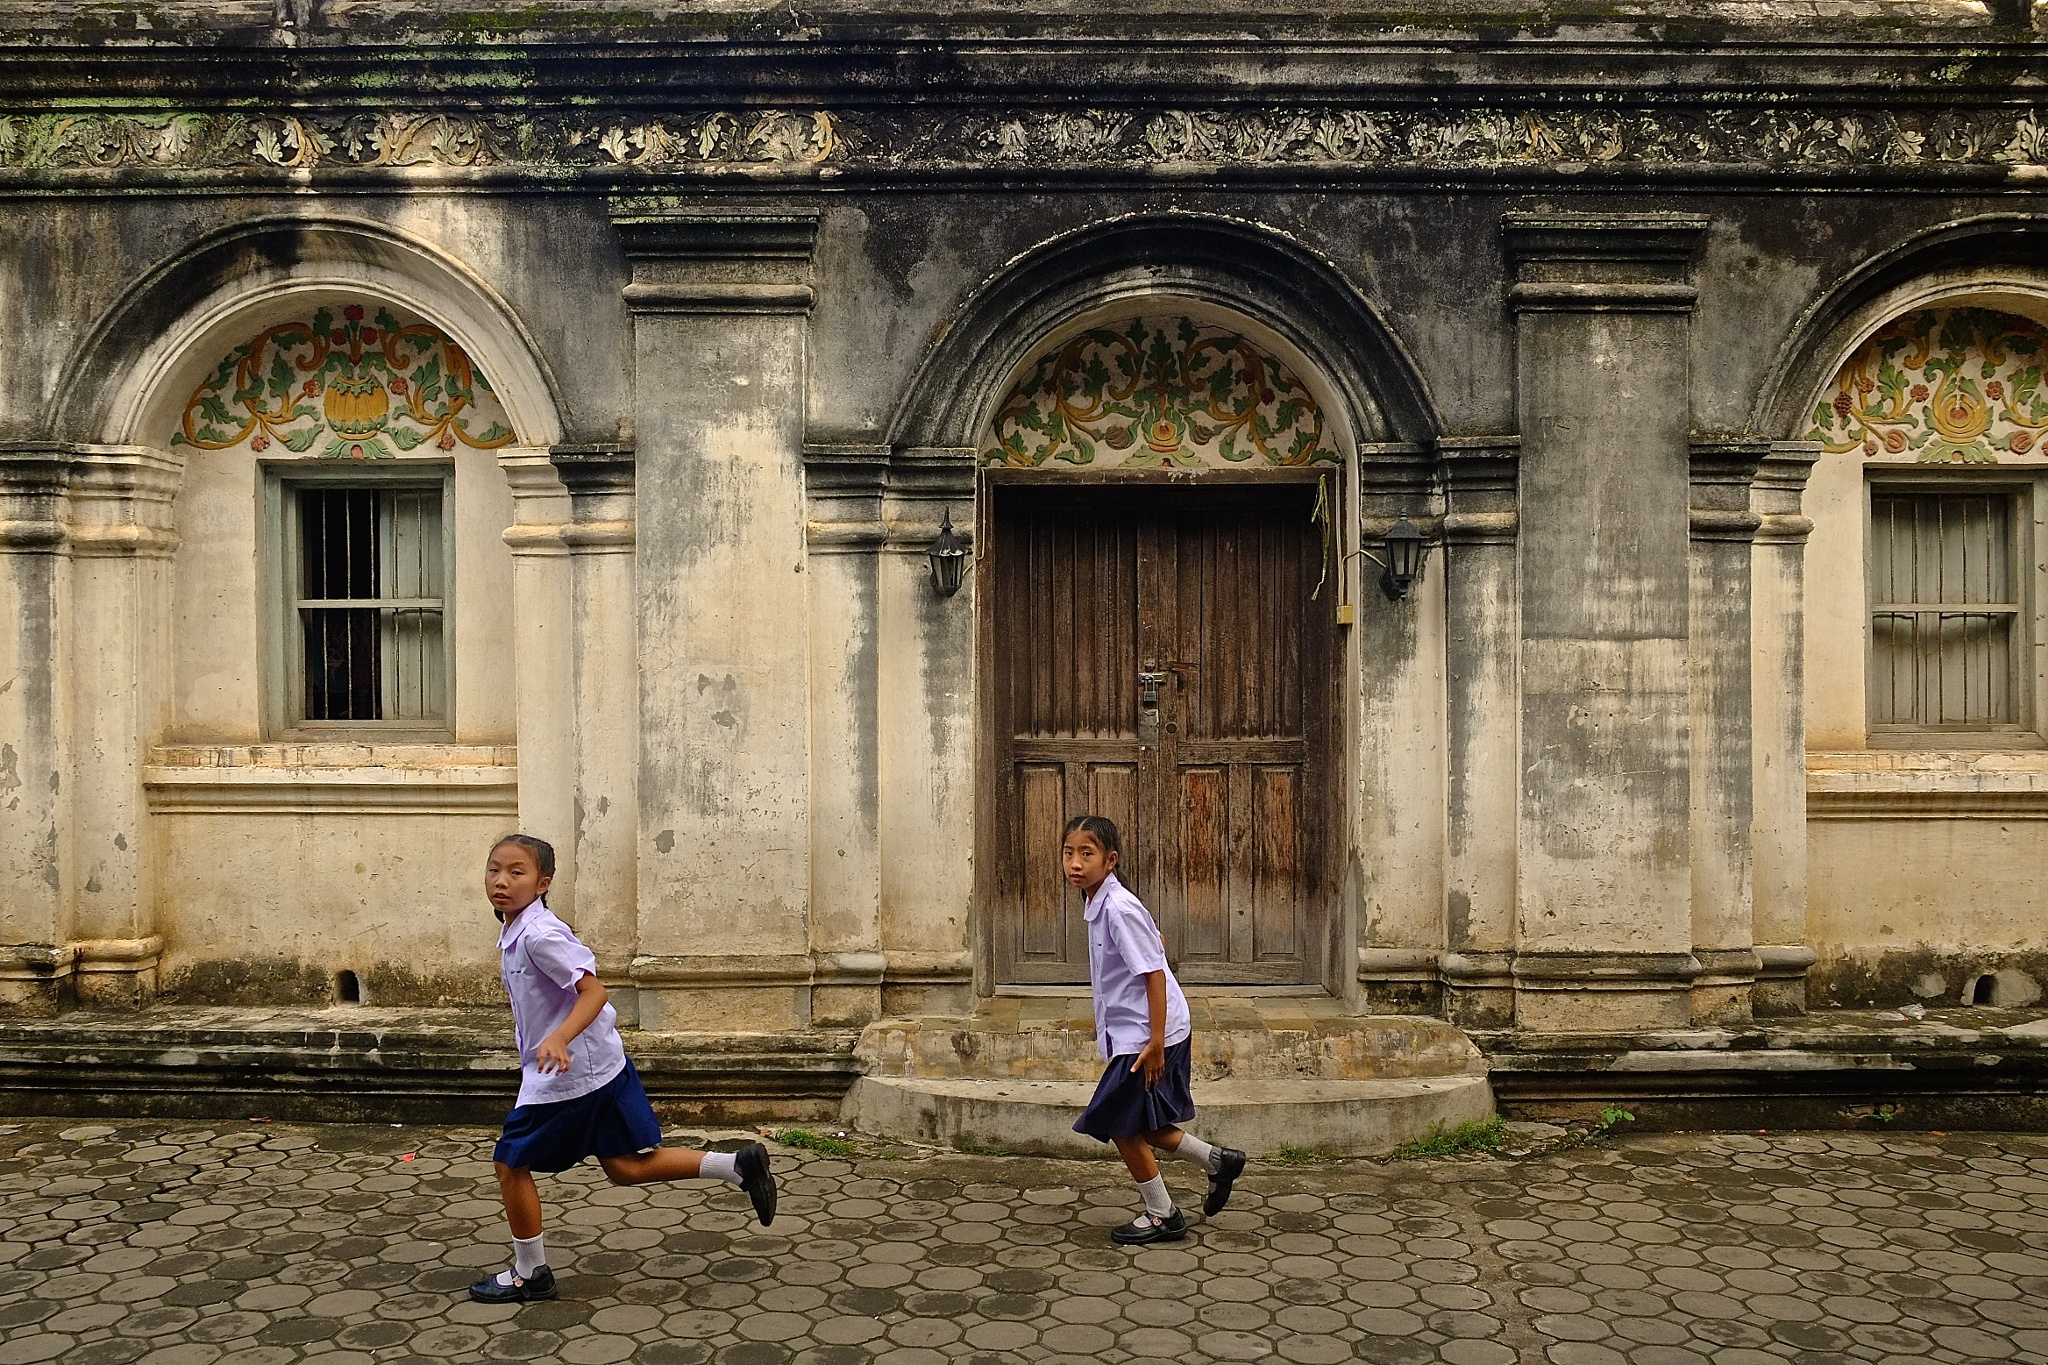 Quickly!, Chiang Mai, Thailand by JohnMilligan